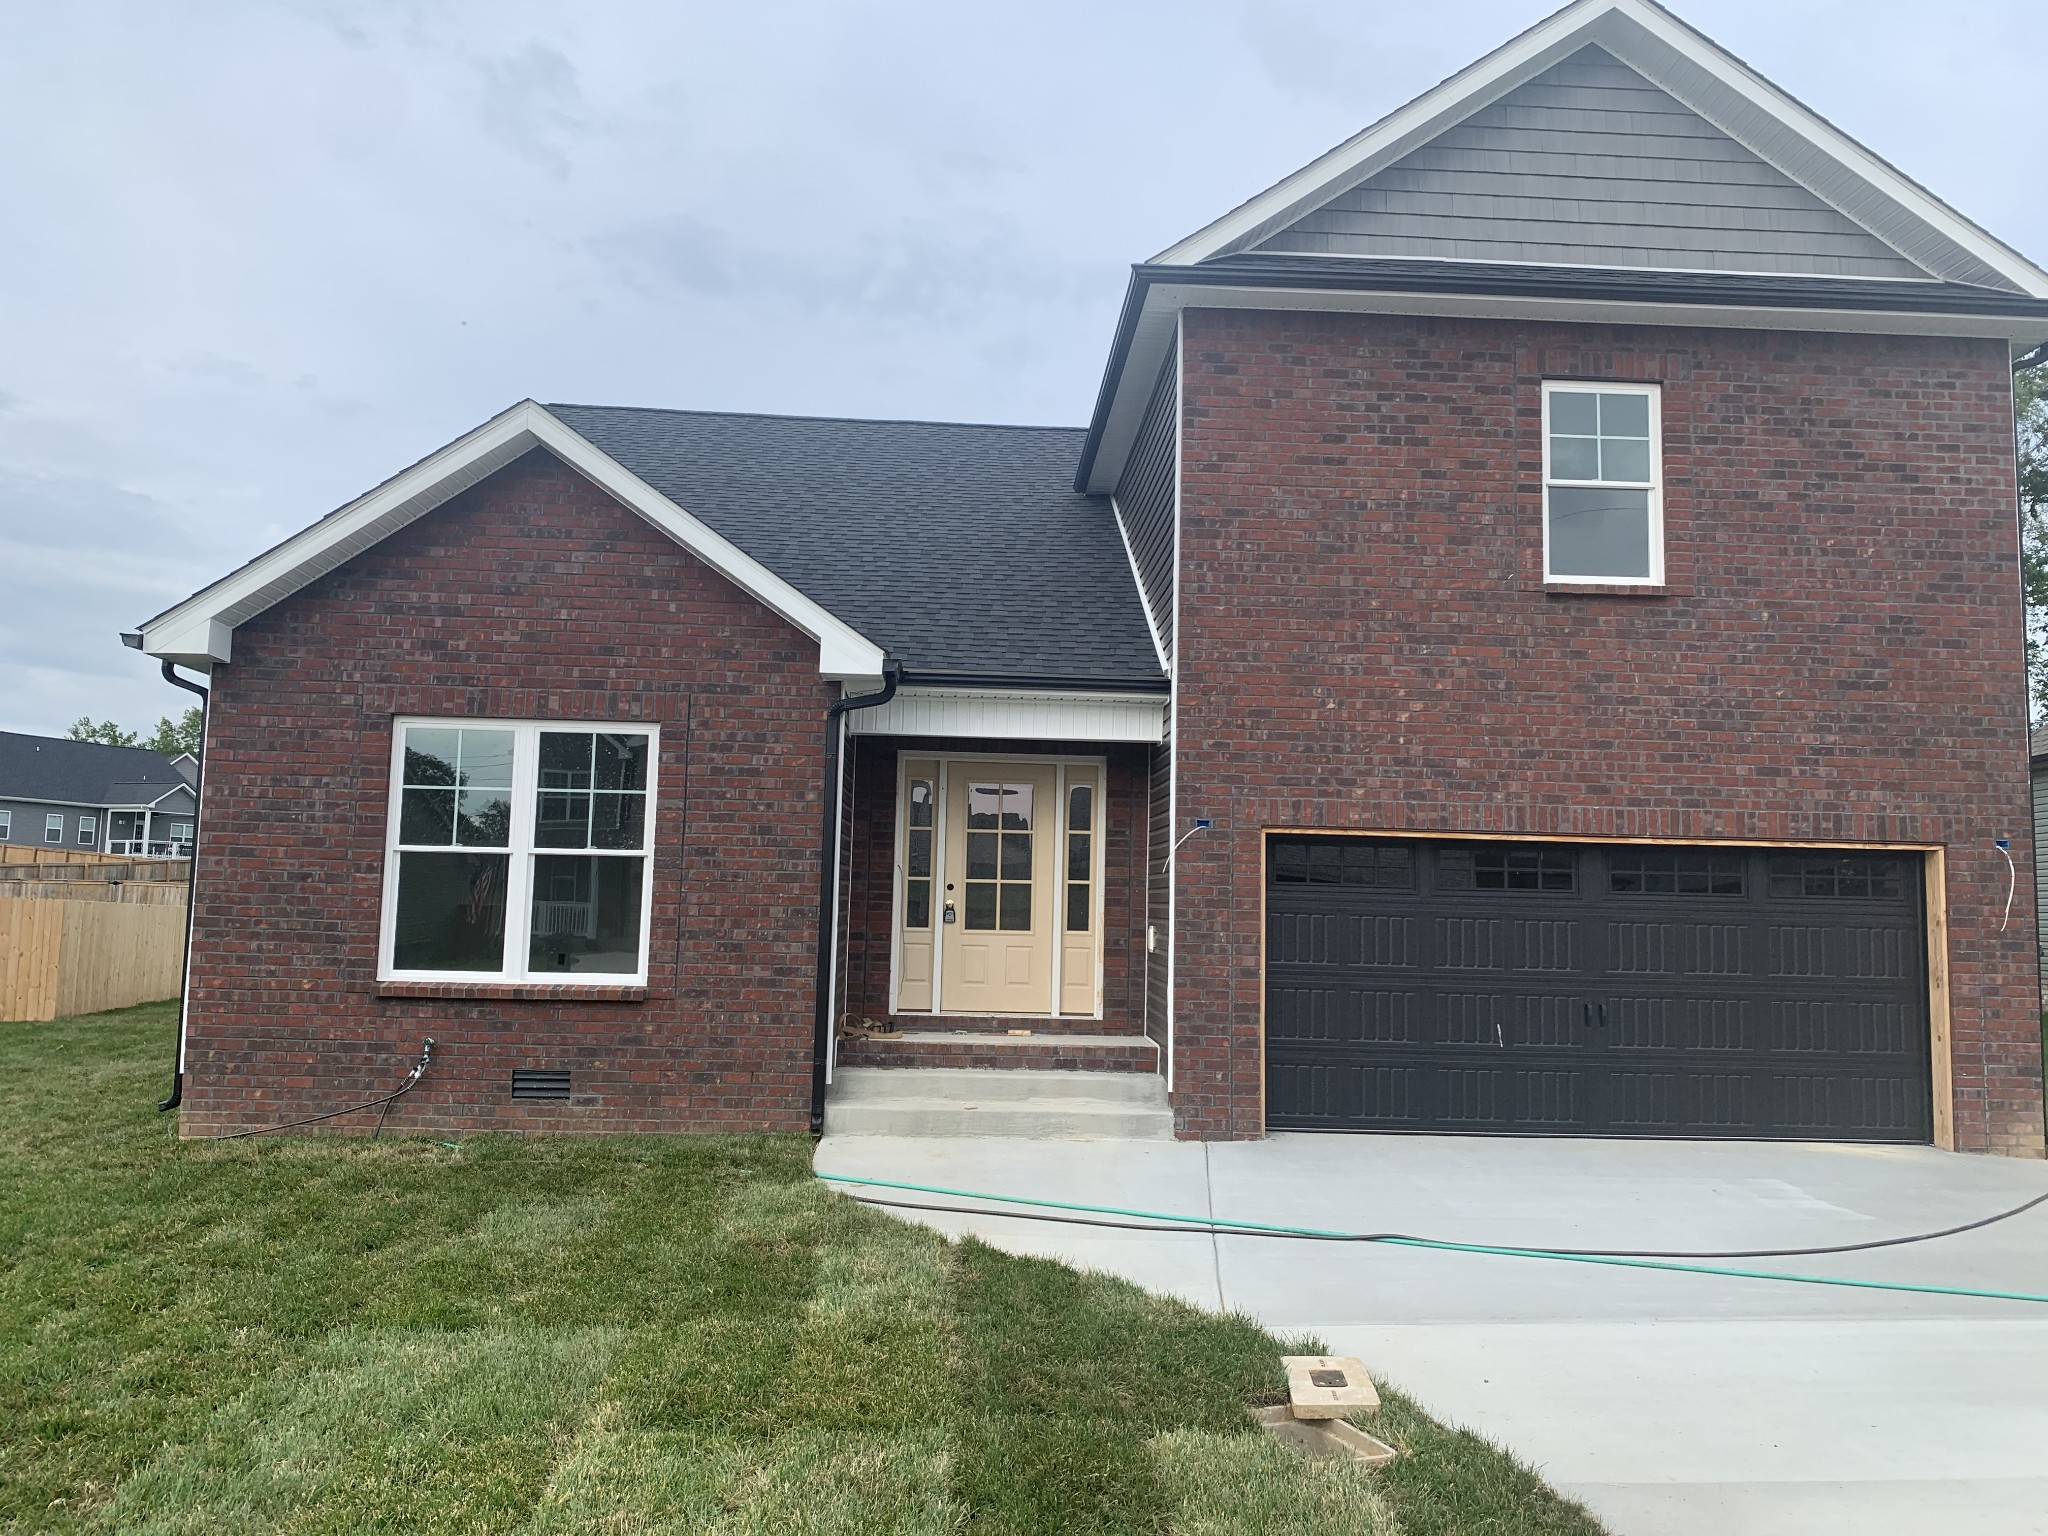 342 Rye Dr Property Photo - Clarksville, TN real estate listing